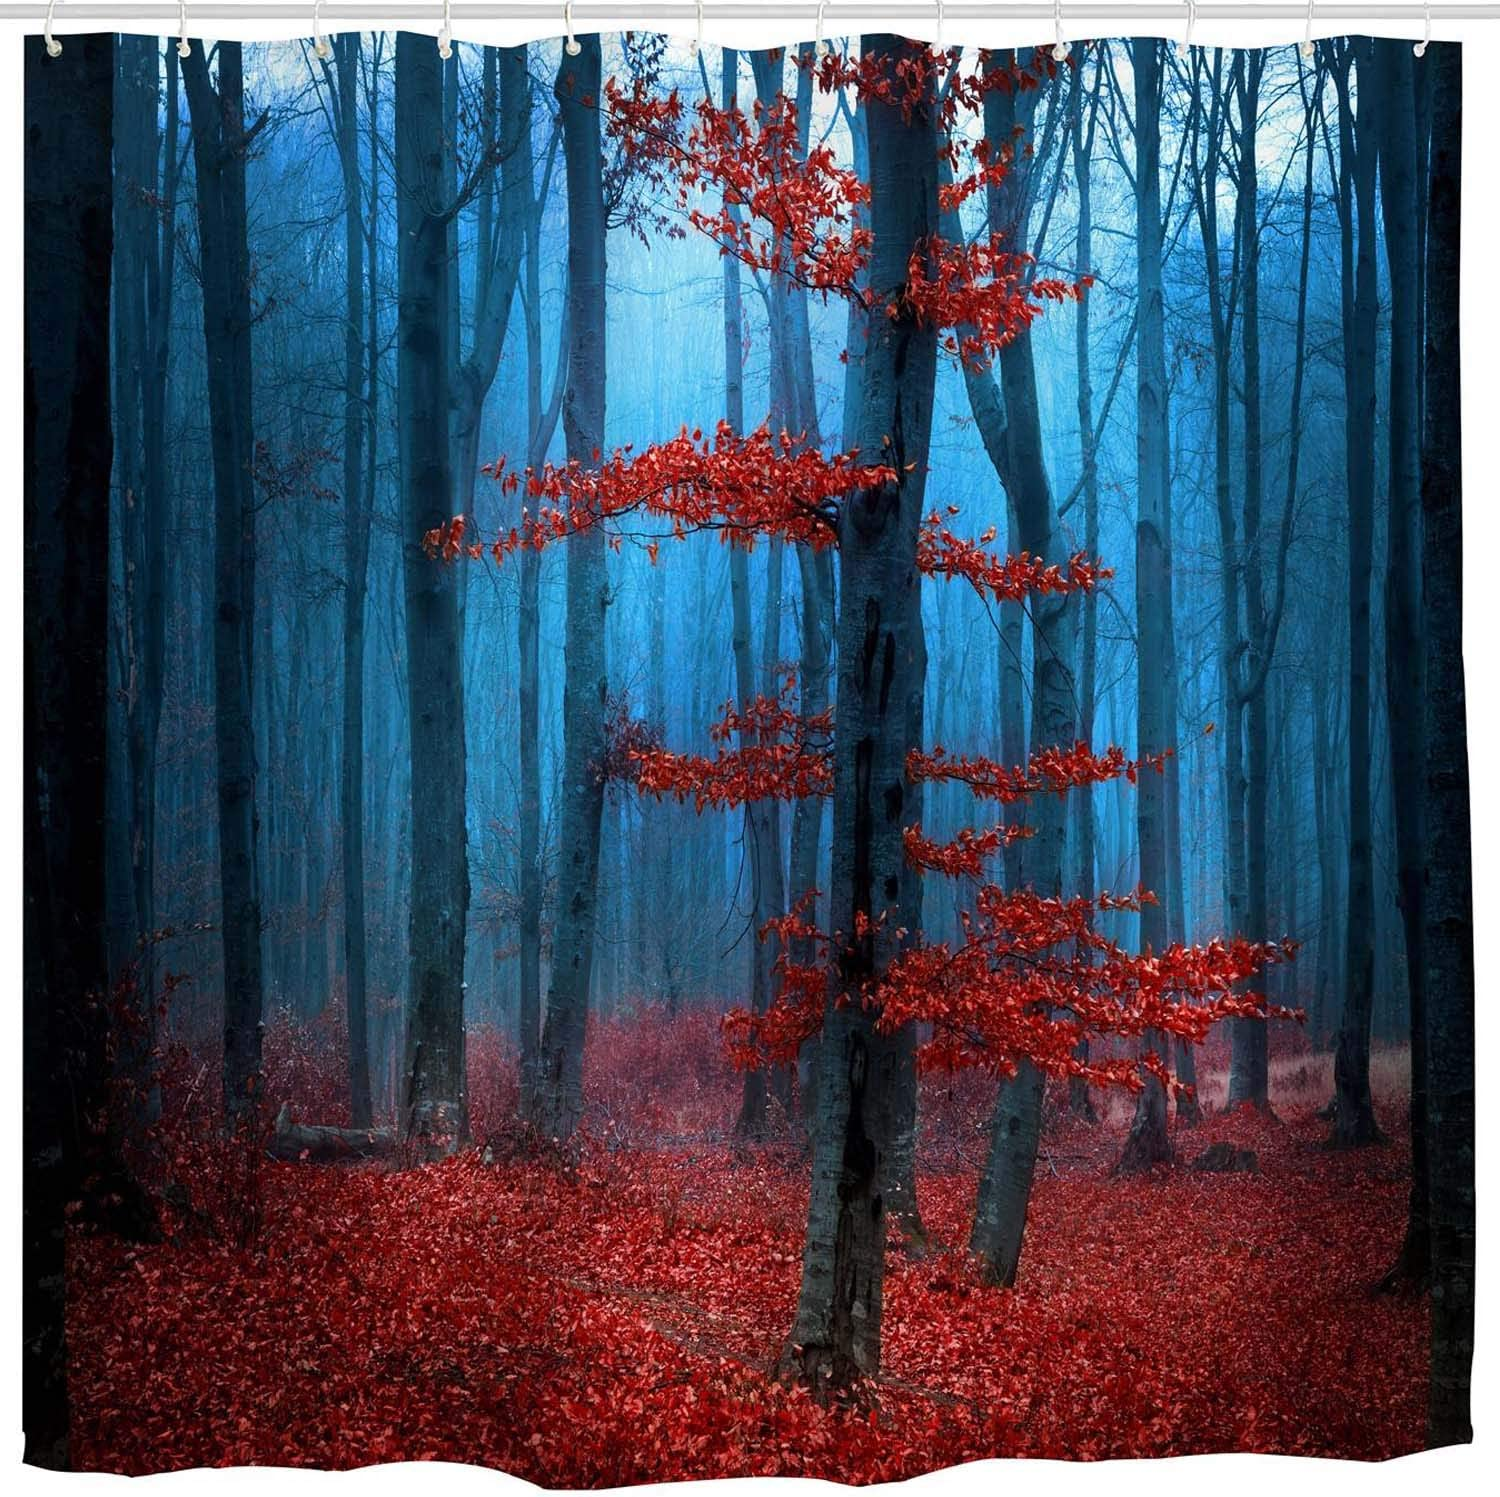 BROSHAN Mystic Forest Shower Curtains, Country Fall Foggy Woodland Scene Nature Bath Curtain, Farmhouse Waterproof Fabric Bathroom Decor Set with Hooks,72 x 72 inch, Blue